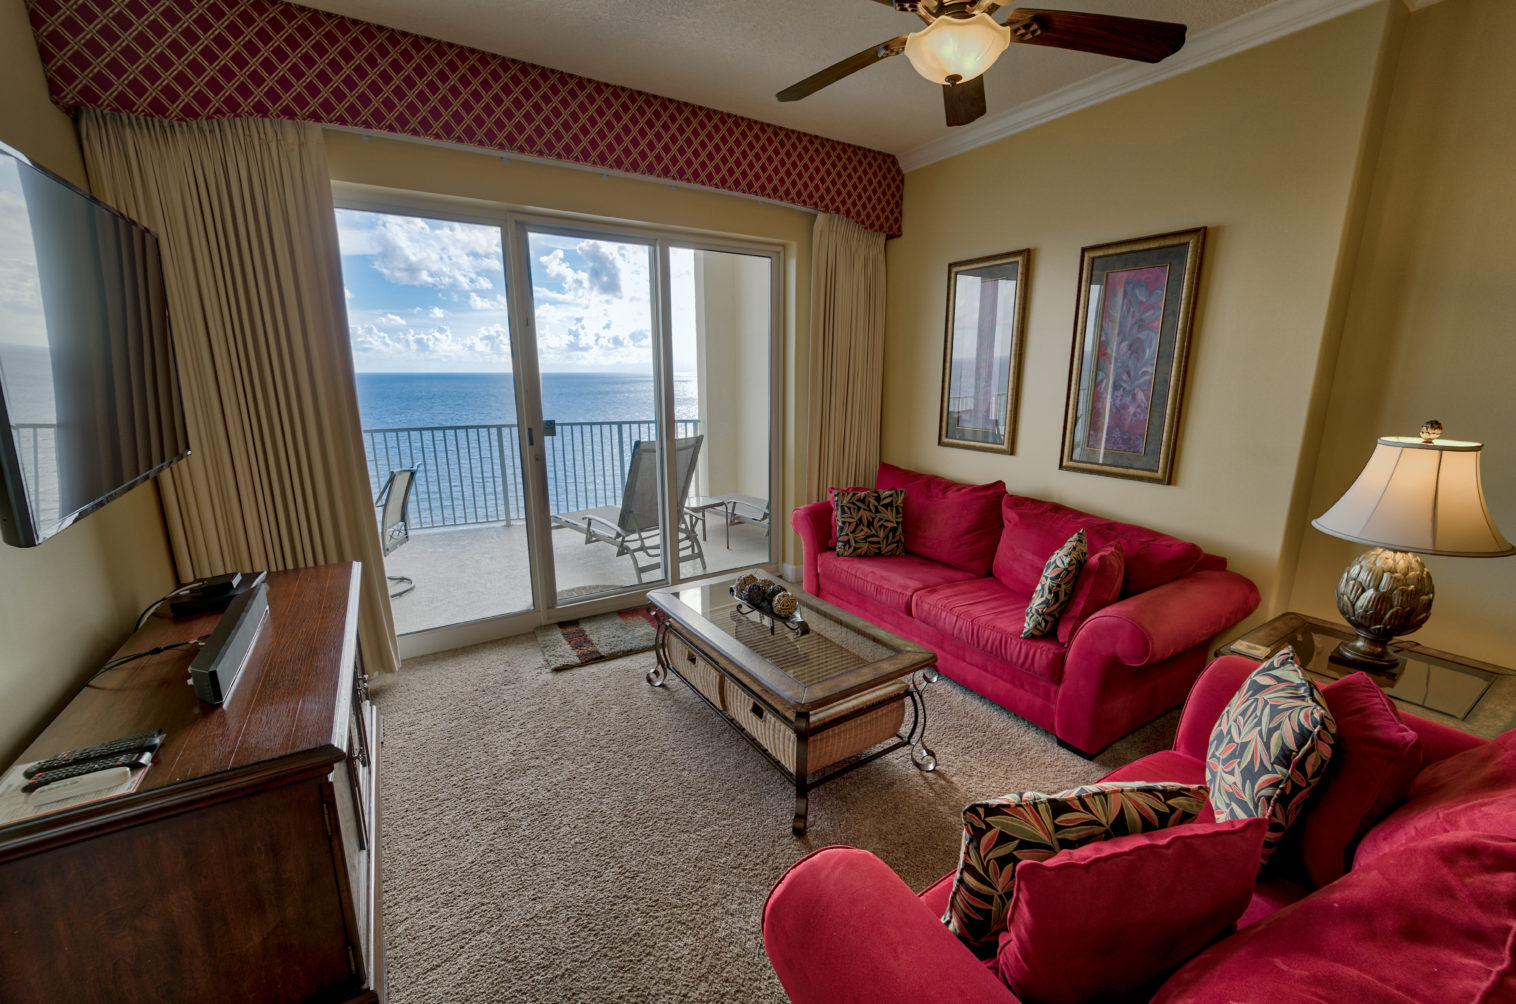 Rental Condo in Panama City Beach Florida